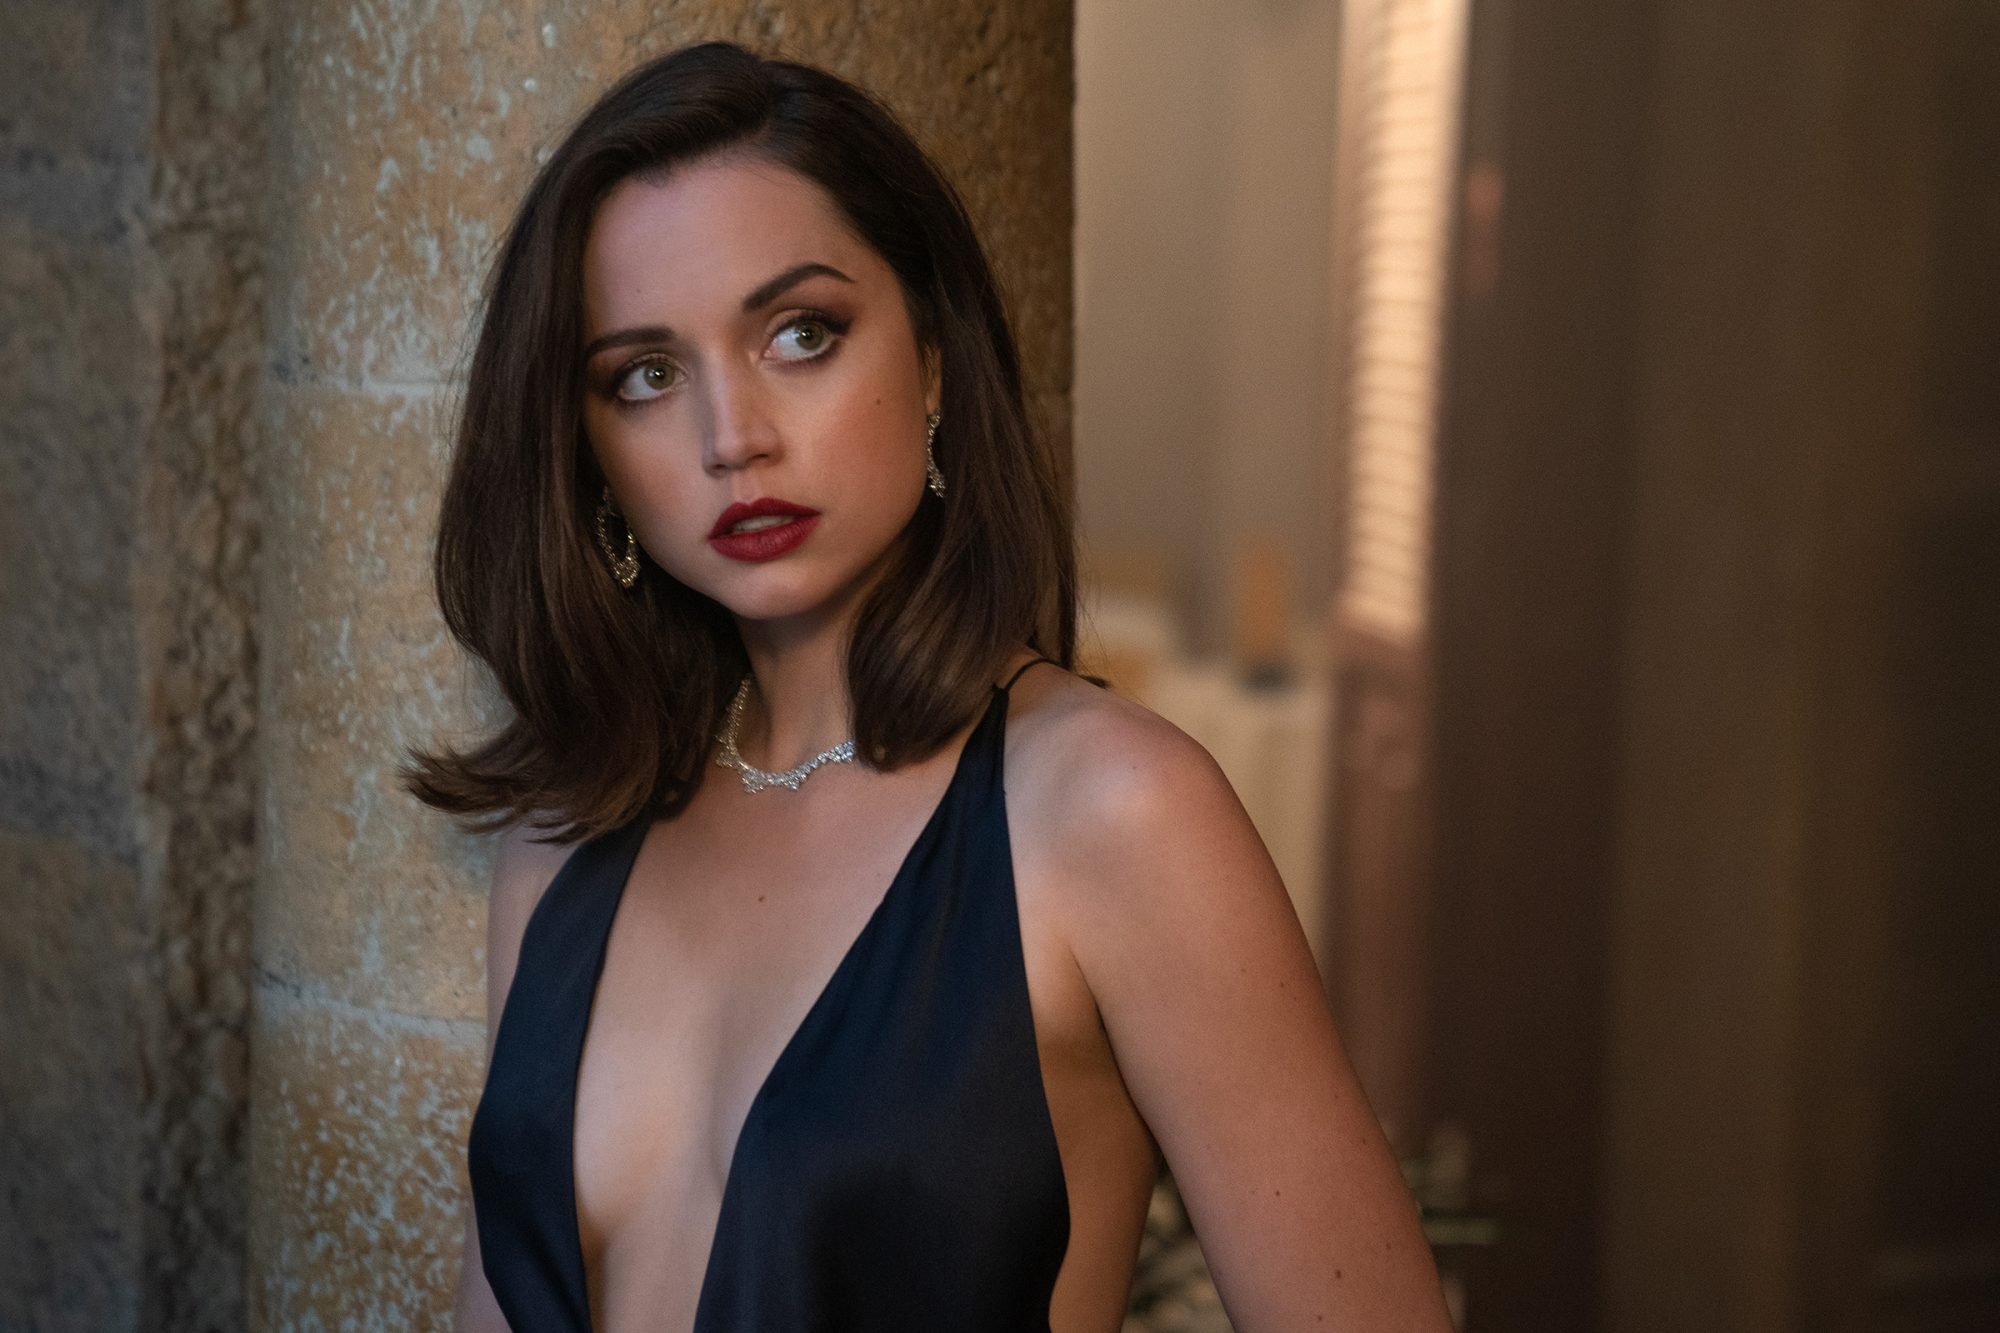 Paloma (Ana De Armas) in Cuba in NO TIME TO DIE, a DANJAQ and Metro Goldwyn Mayer Pictures film